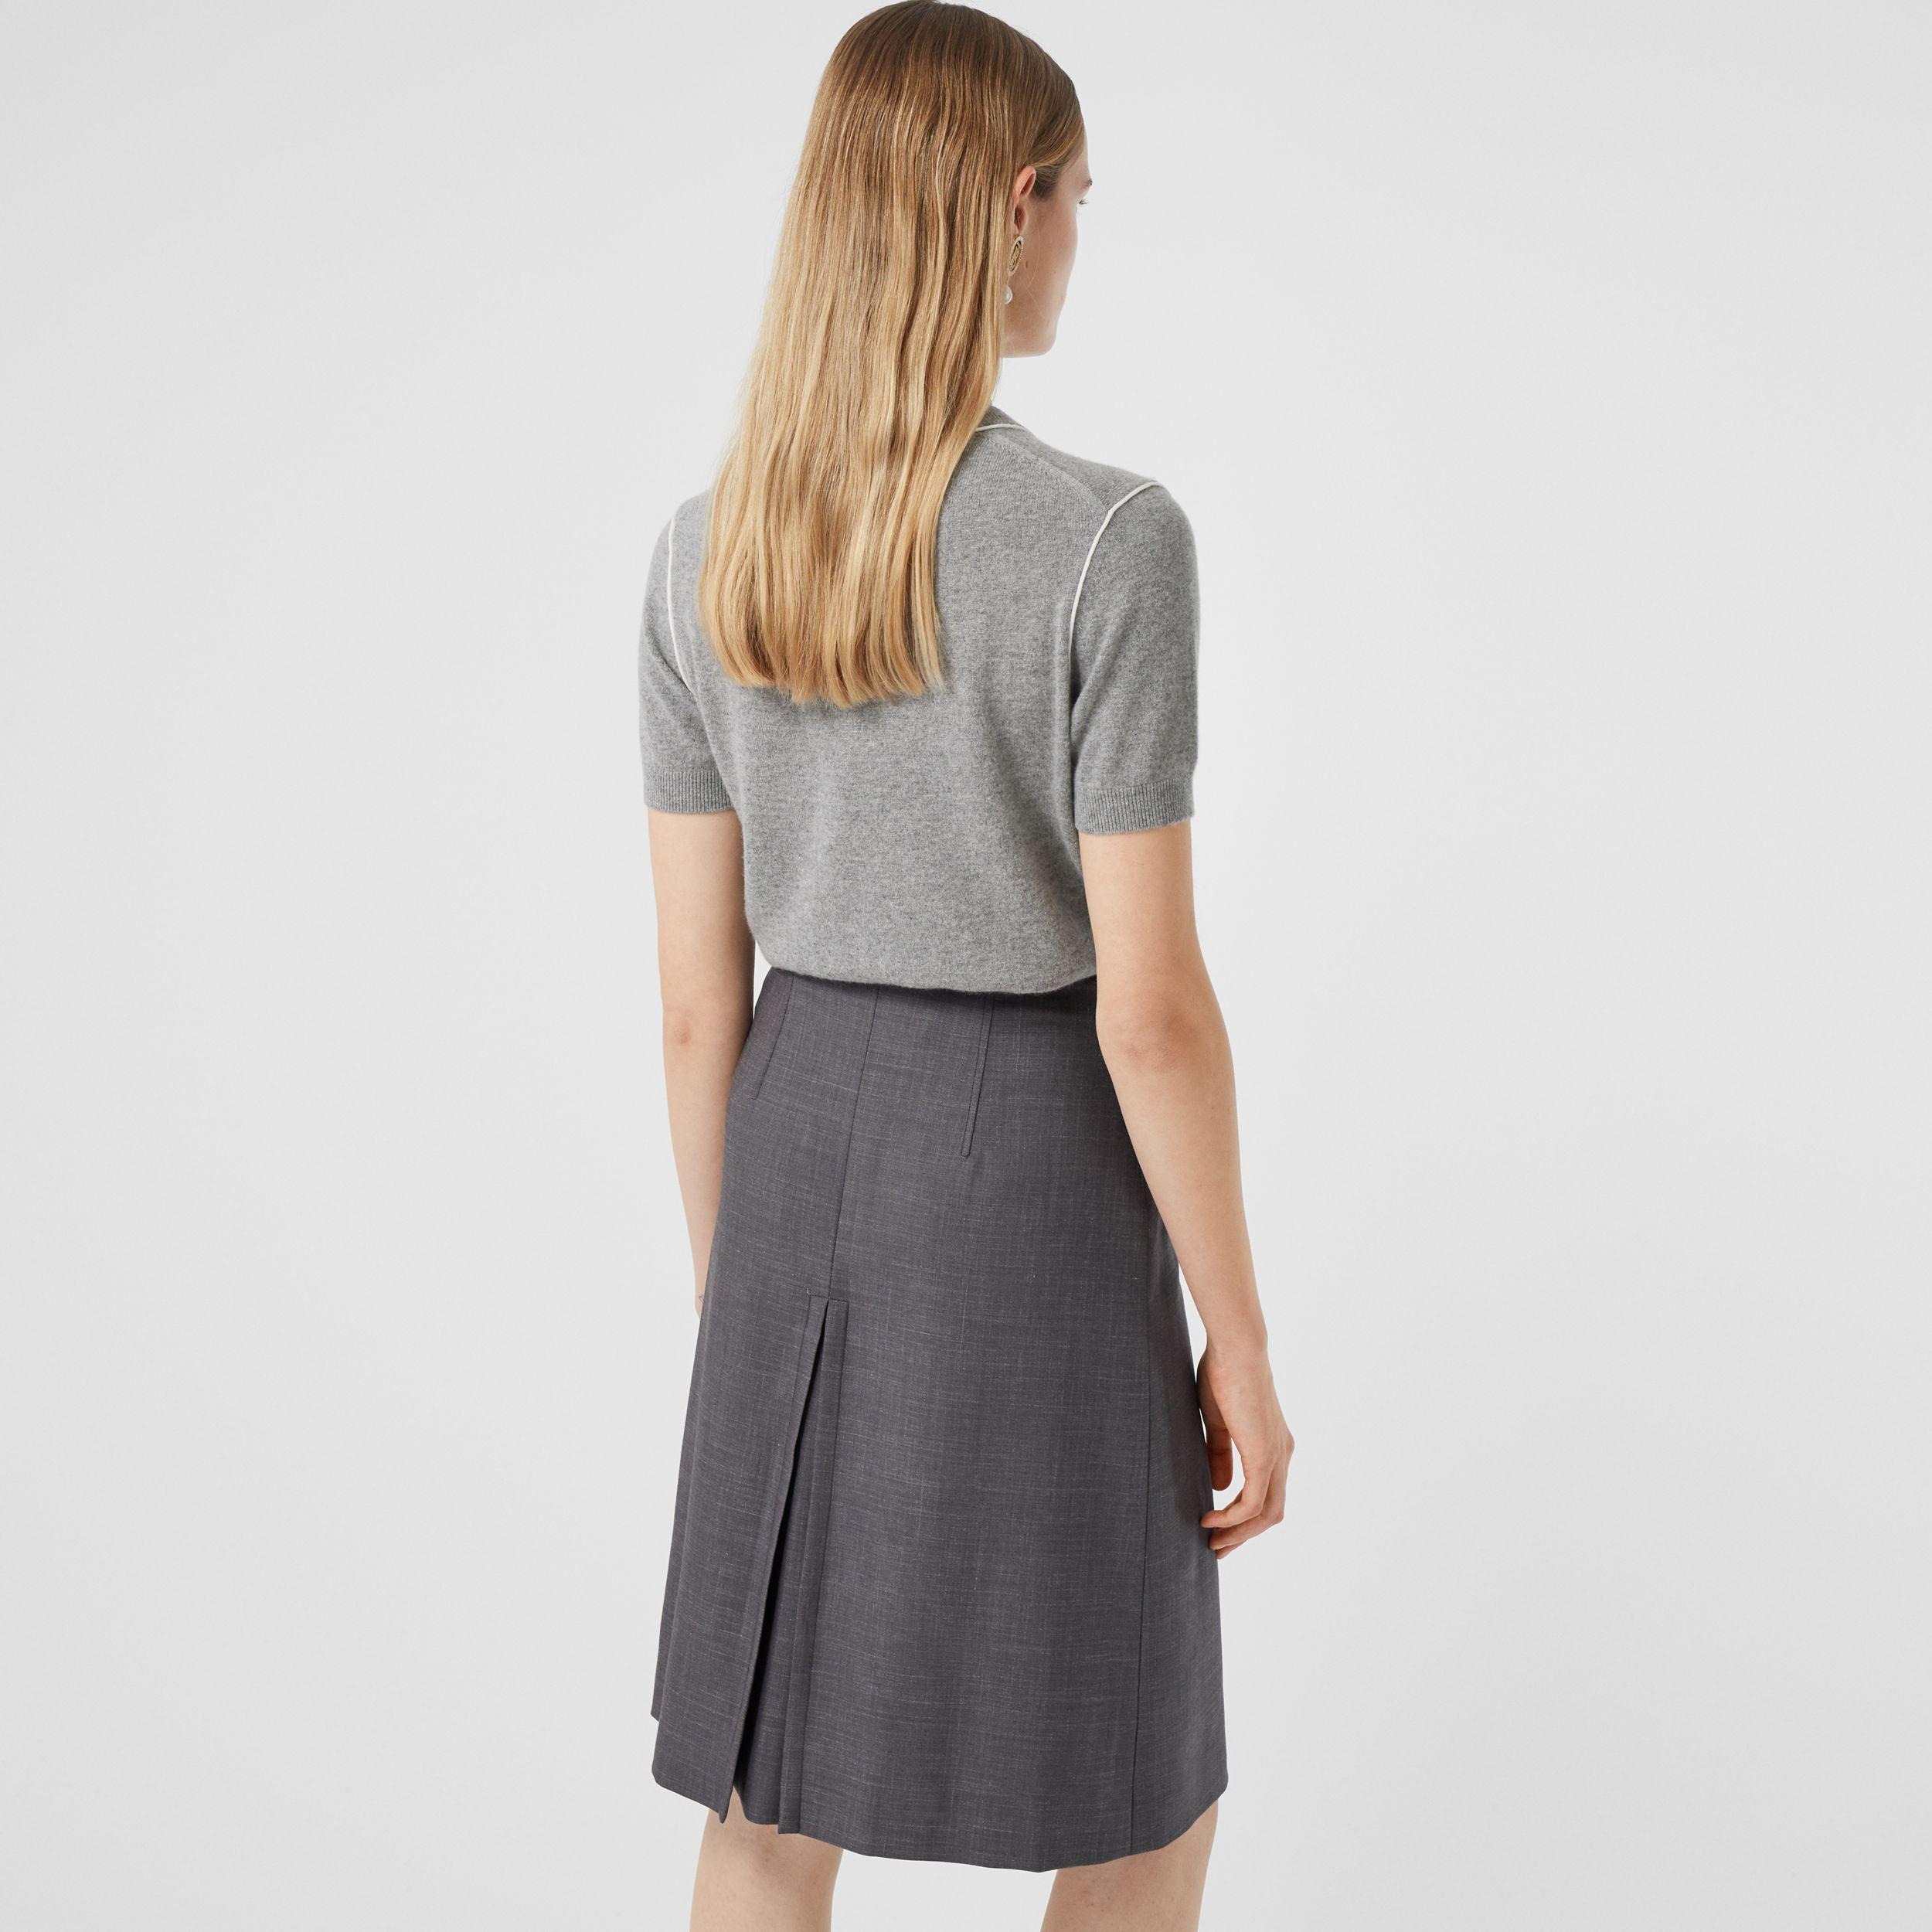 Short-sleeve Monogram Motif Cashmere Top in Grey Melange - Women | Burberry United Kingdom - 3